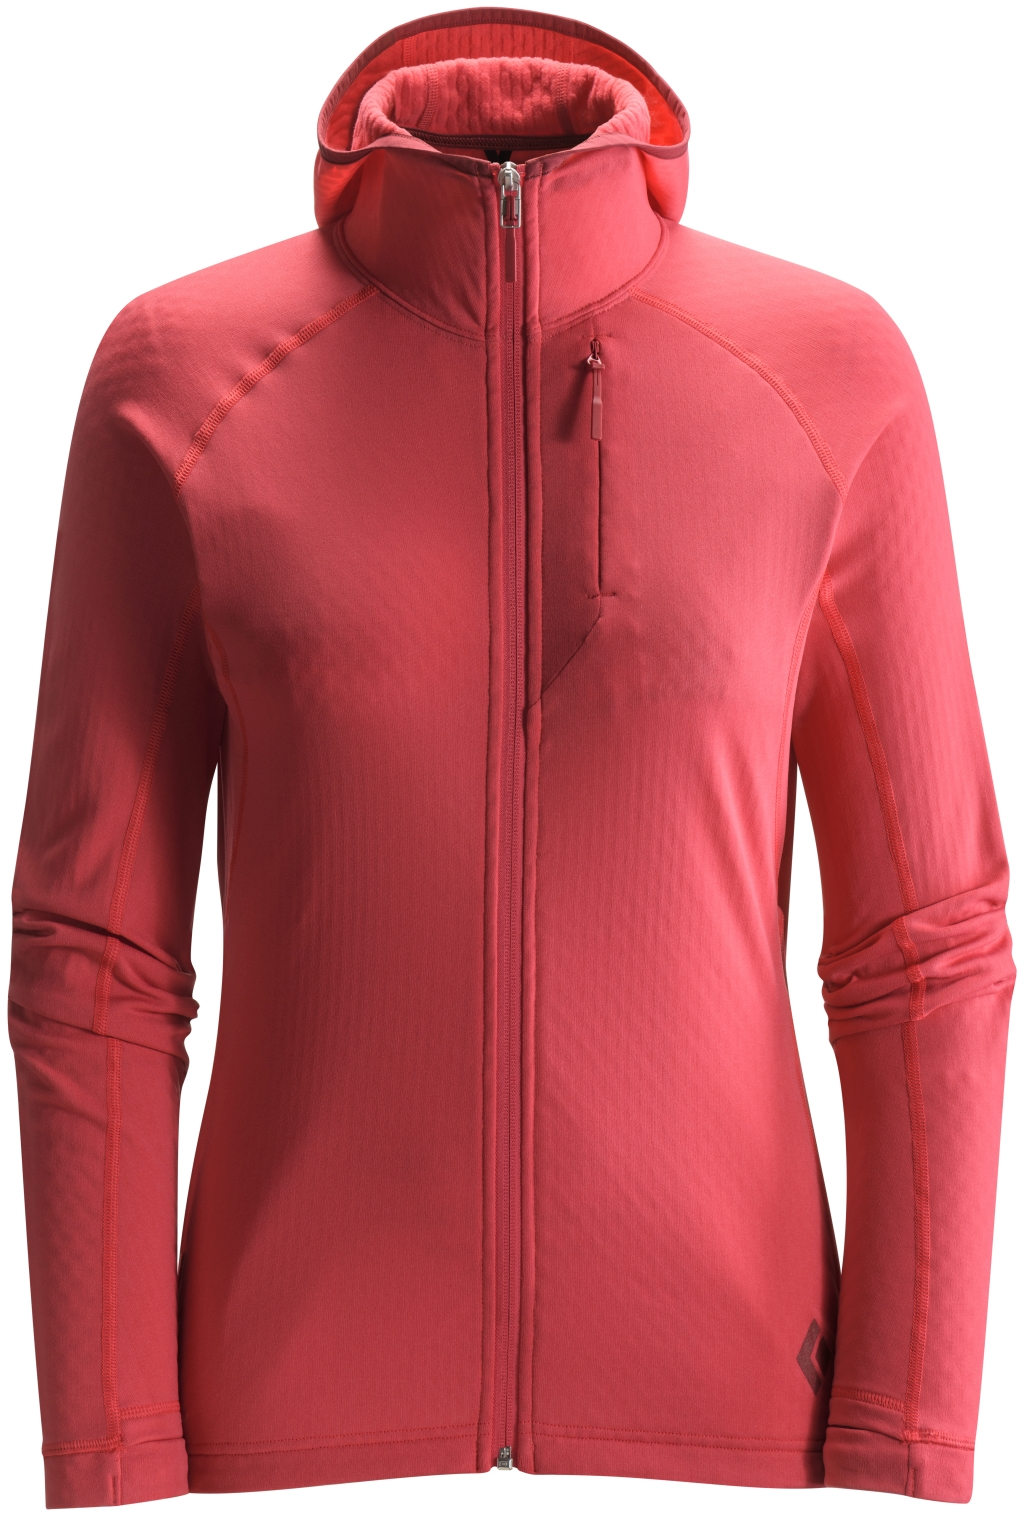 Black Diamond Coefficient Hoody Women's Peony-30